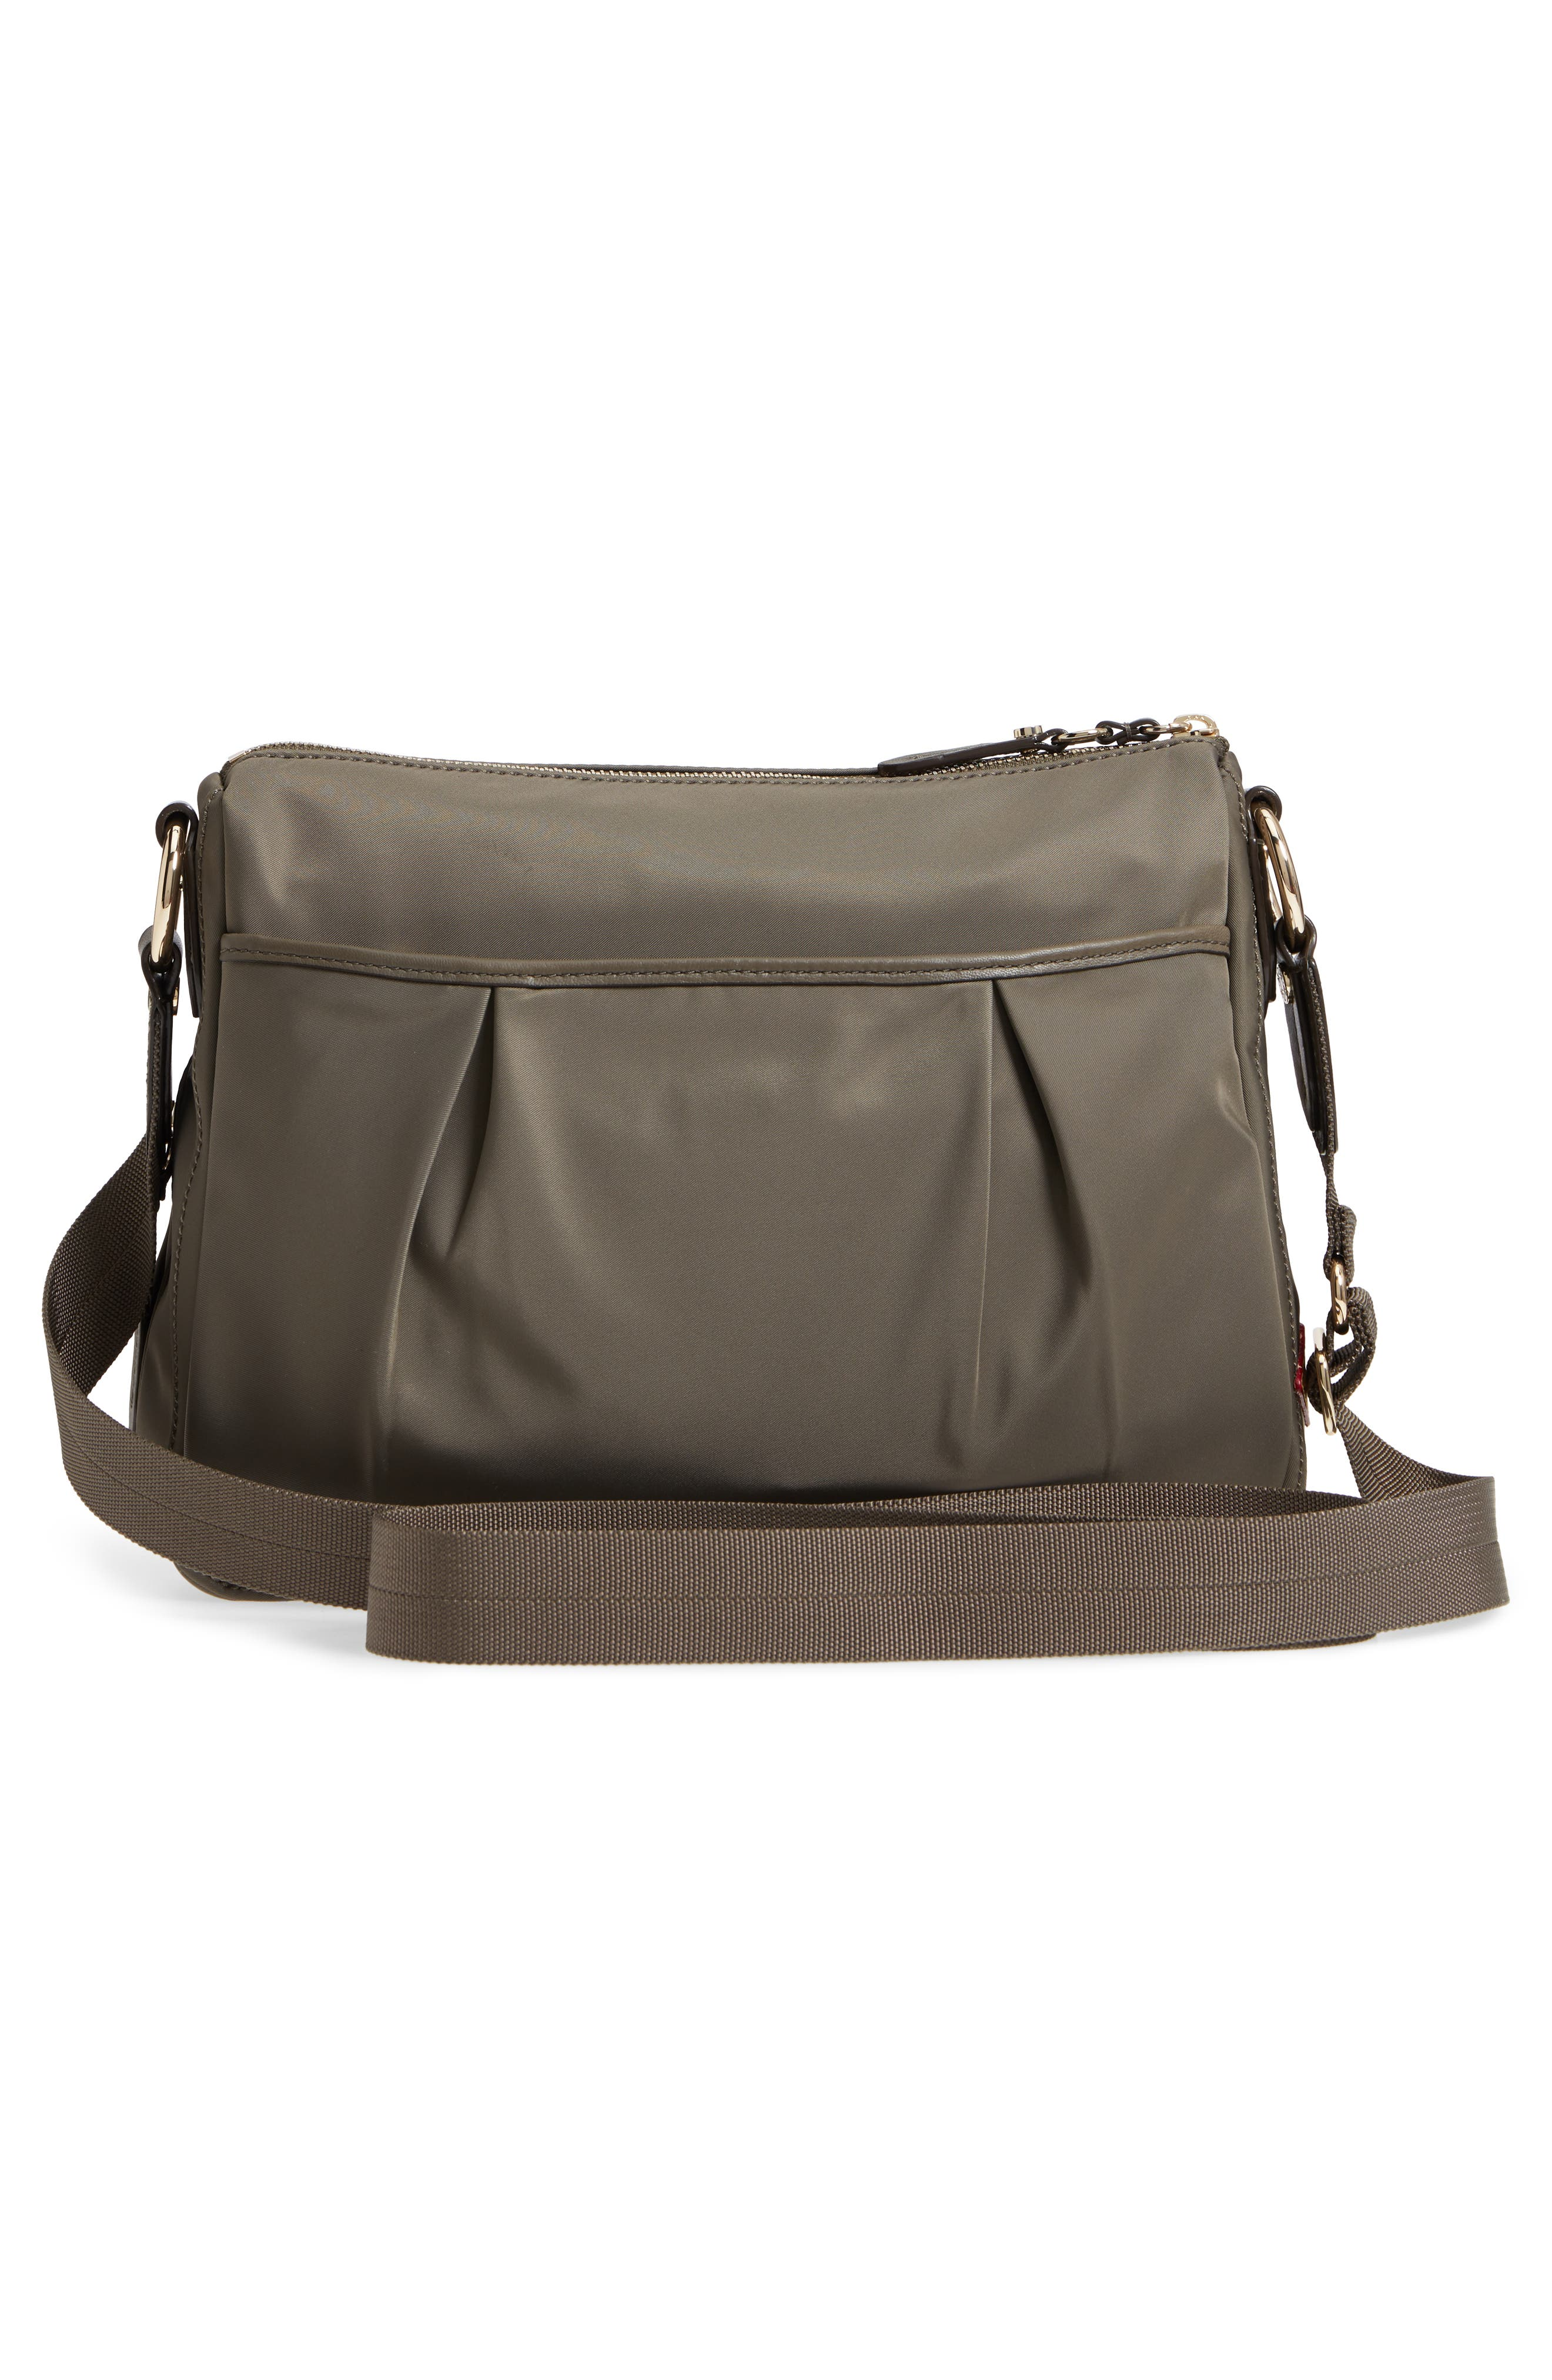 Paige Crossbody Bag,                             Alternate thumbnail 2, color,                             Clay